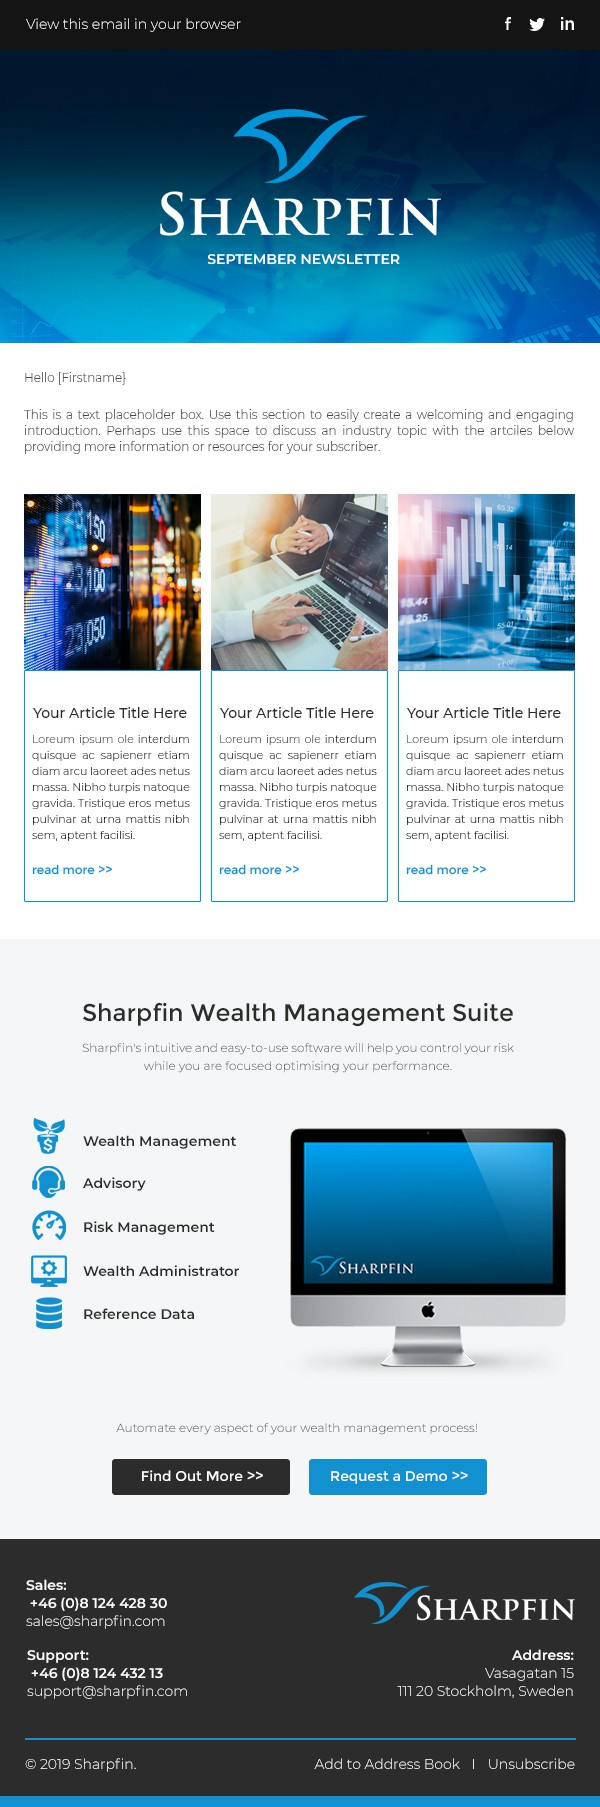 Great news letter design - Help Sharpfin boost our client base